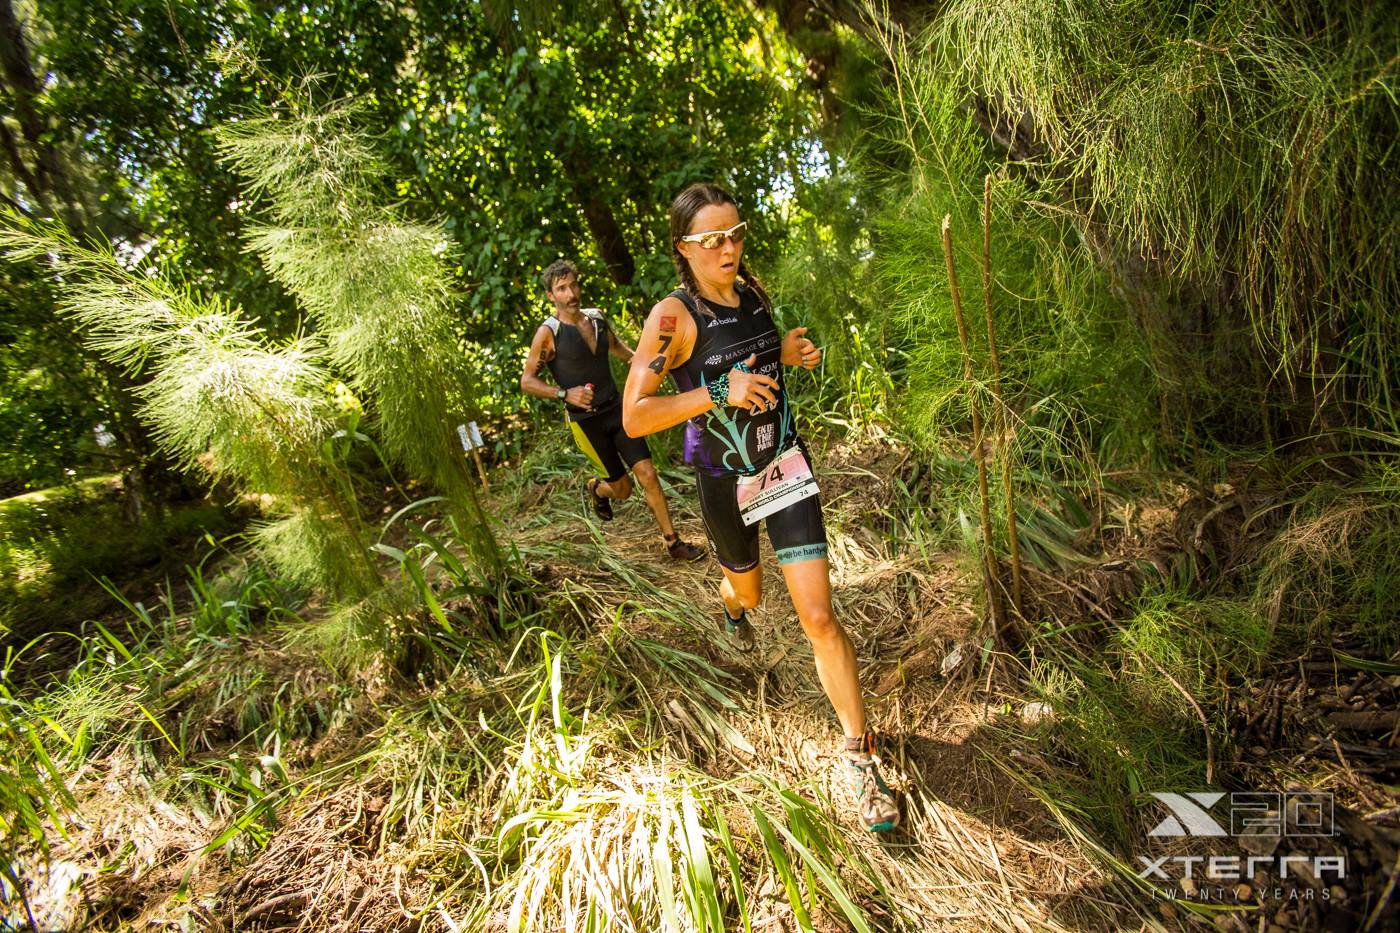 XTERRA_WORLD_CHAMPIONSHIP_2015_00073